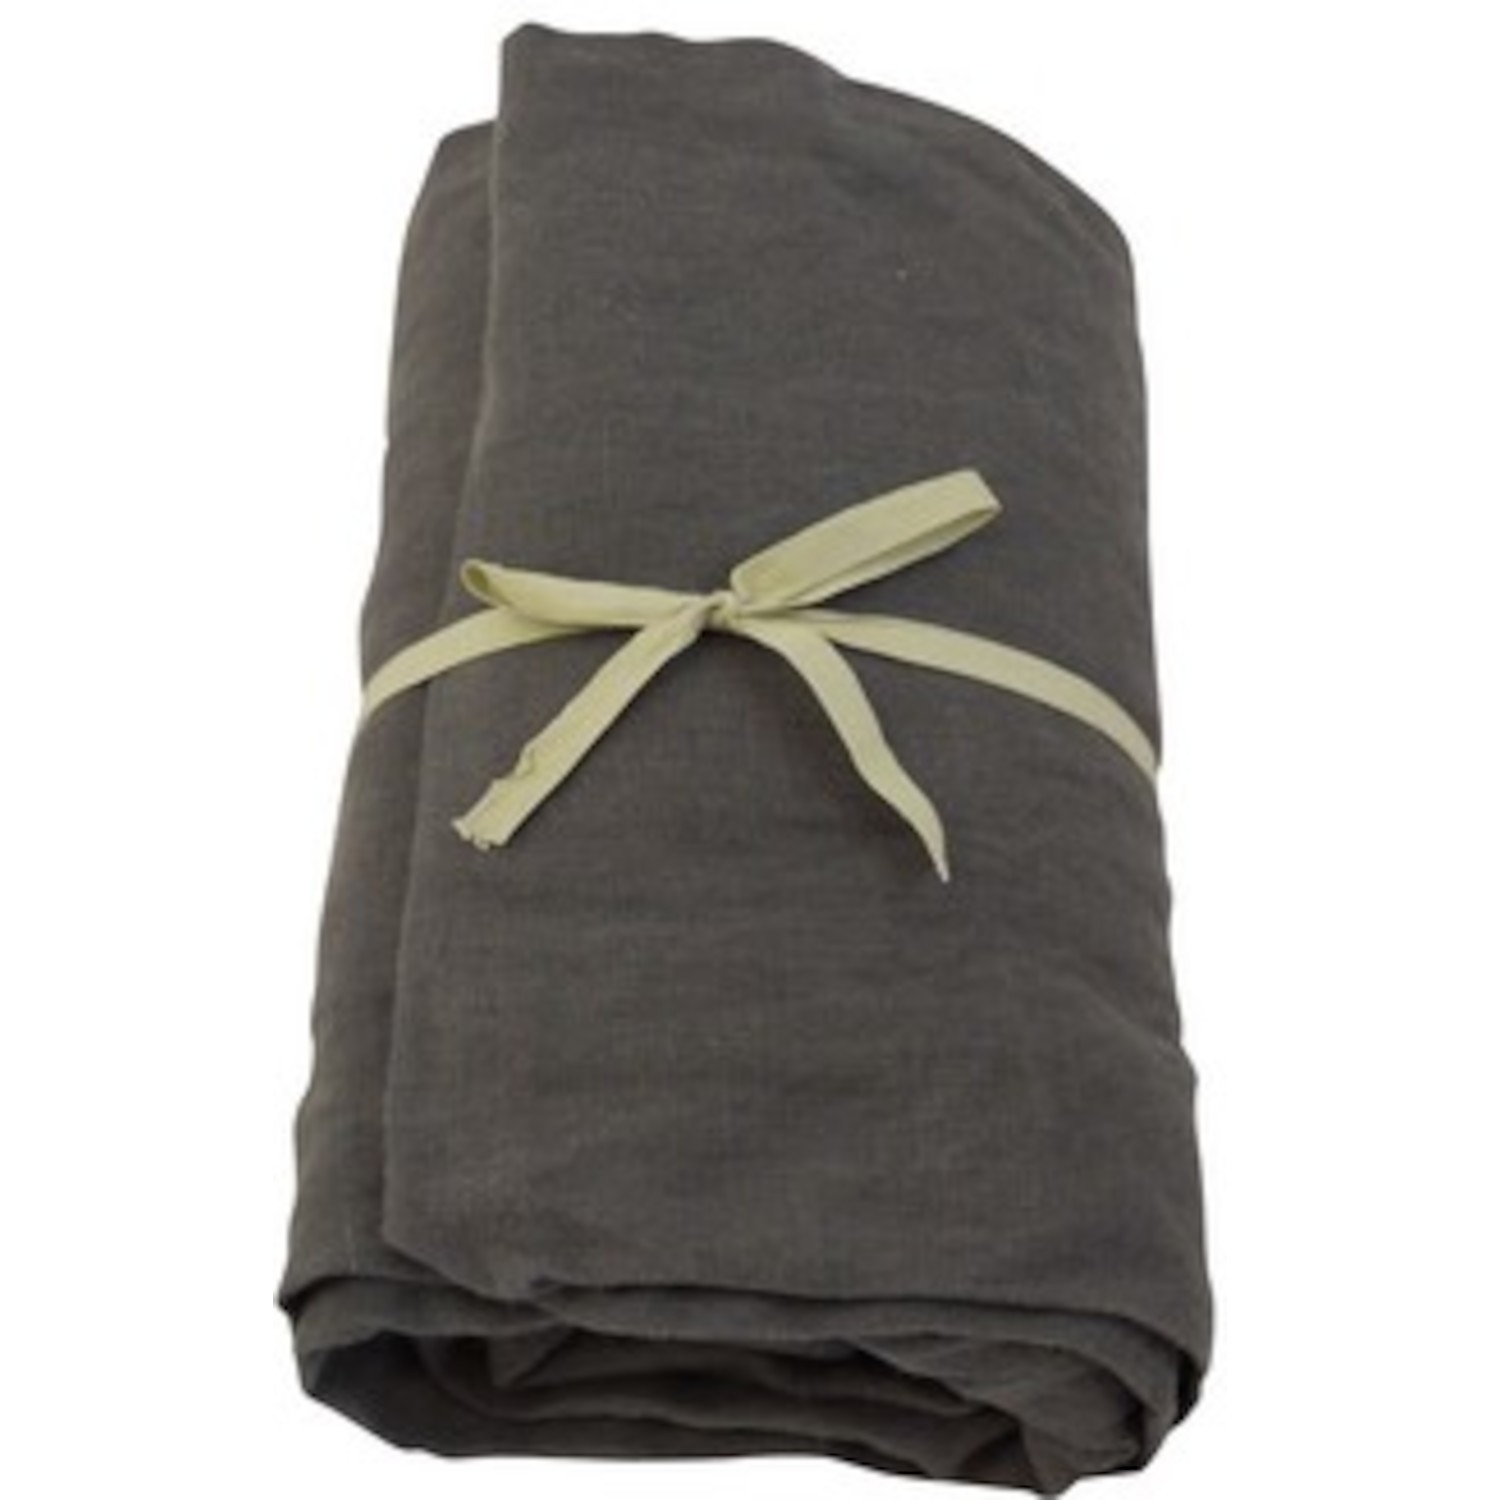 Drap housse lin stone washed lin stone washed for Drap housse lin